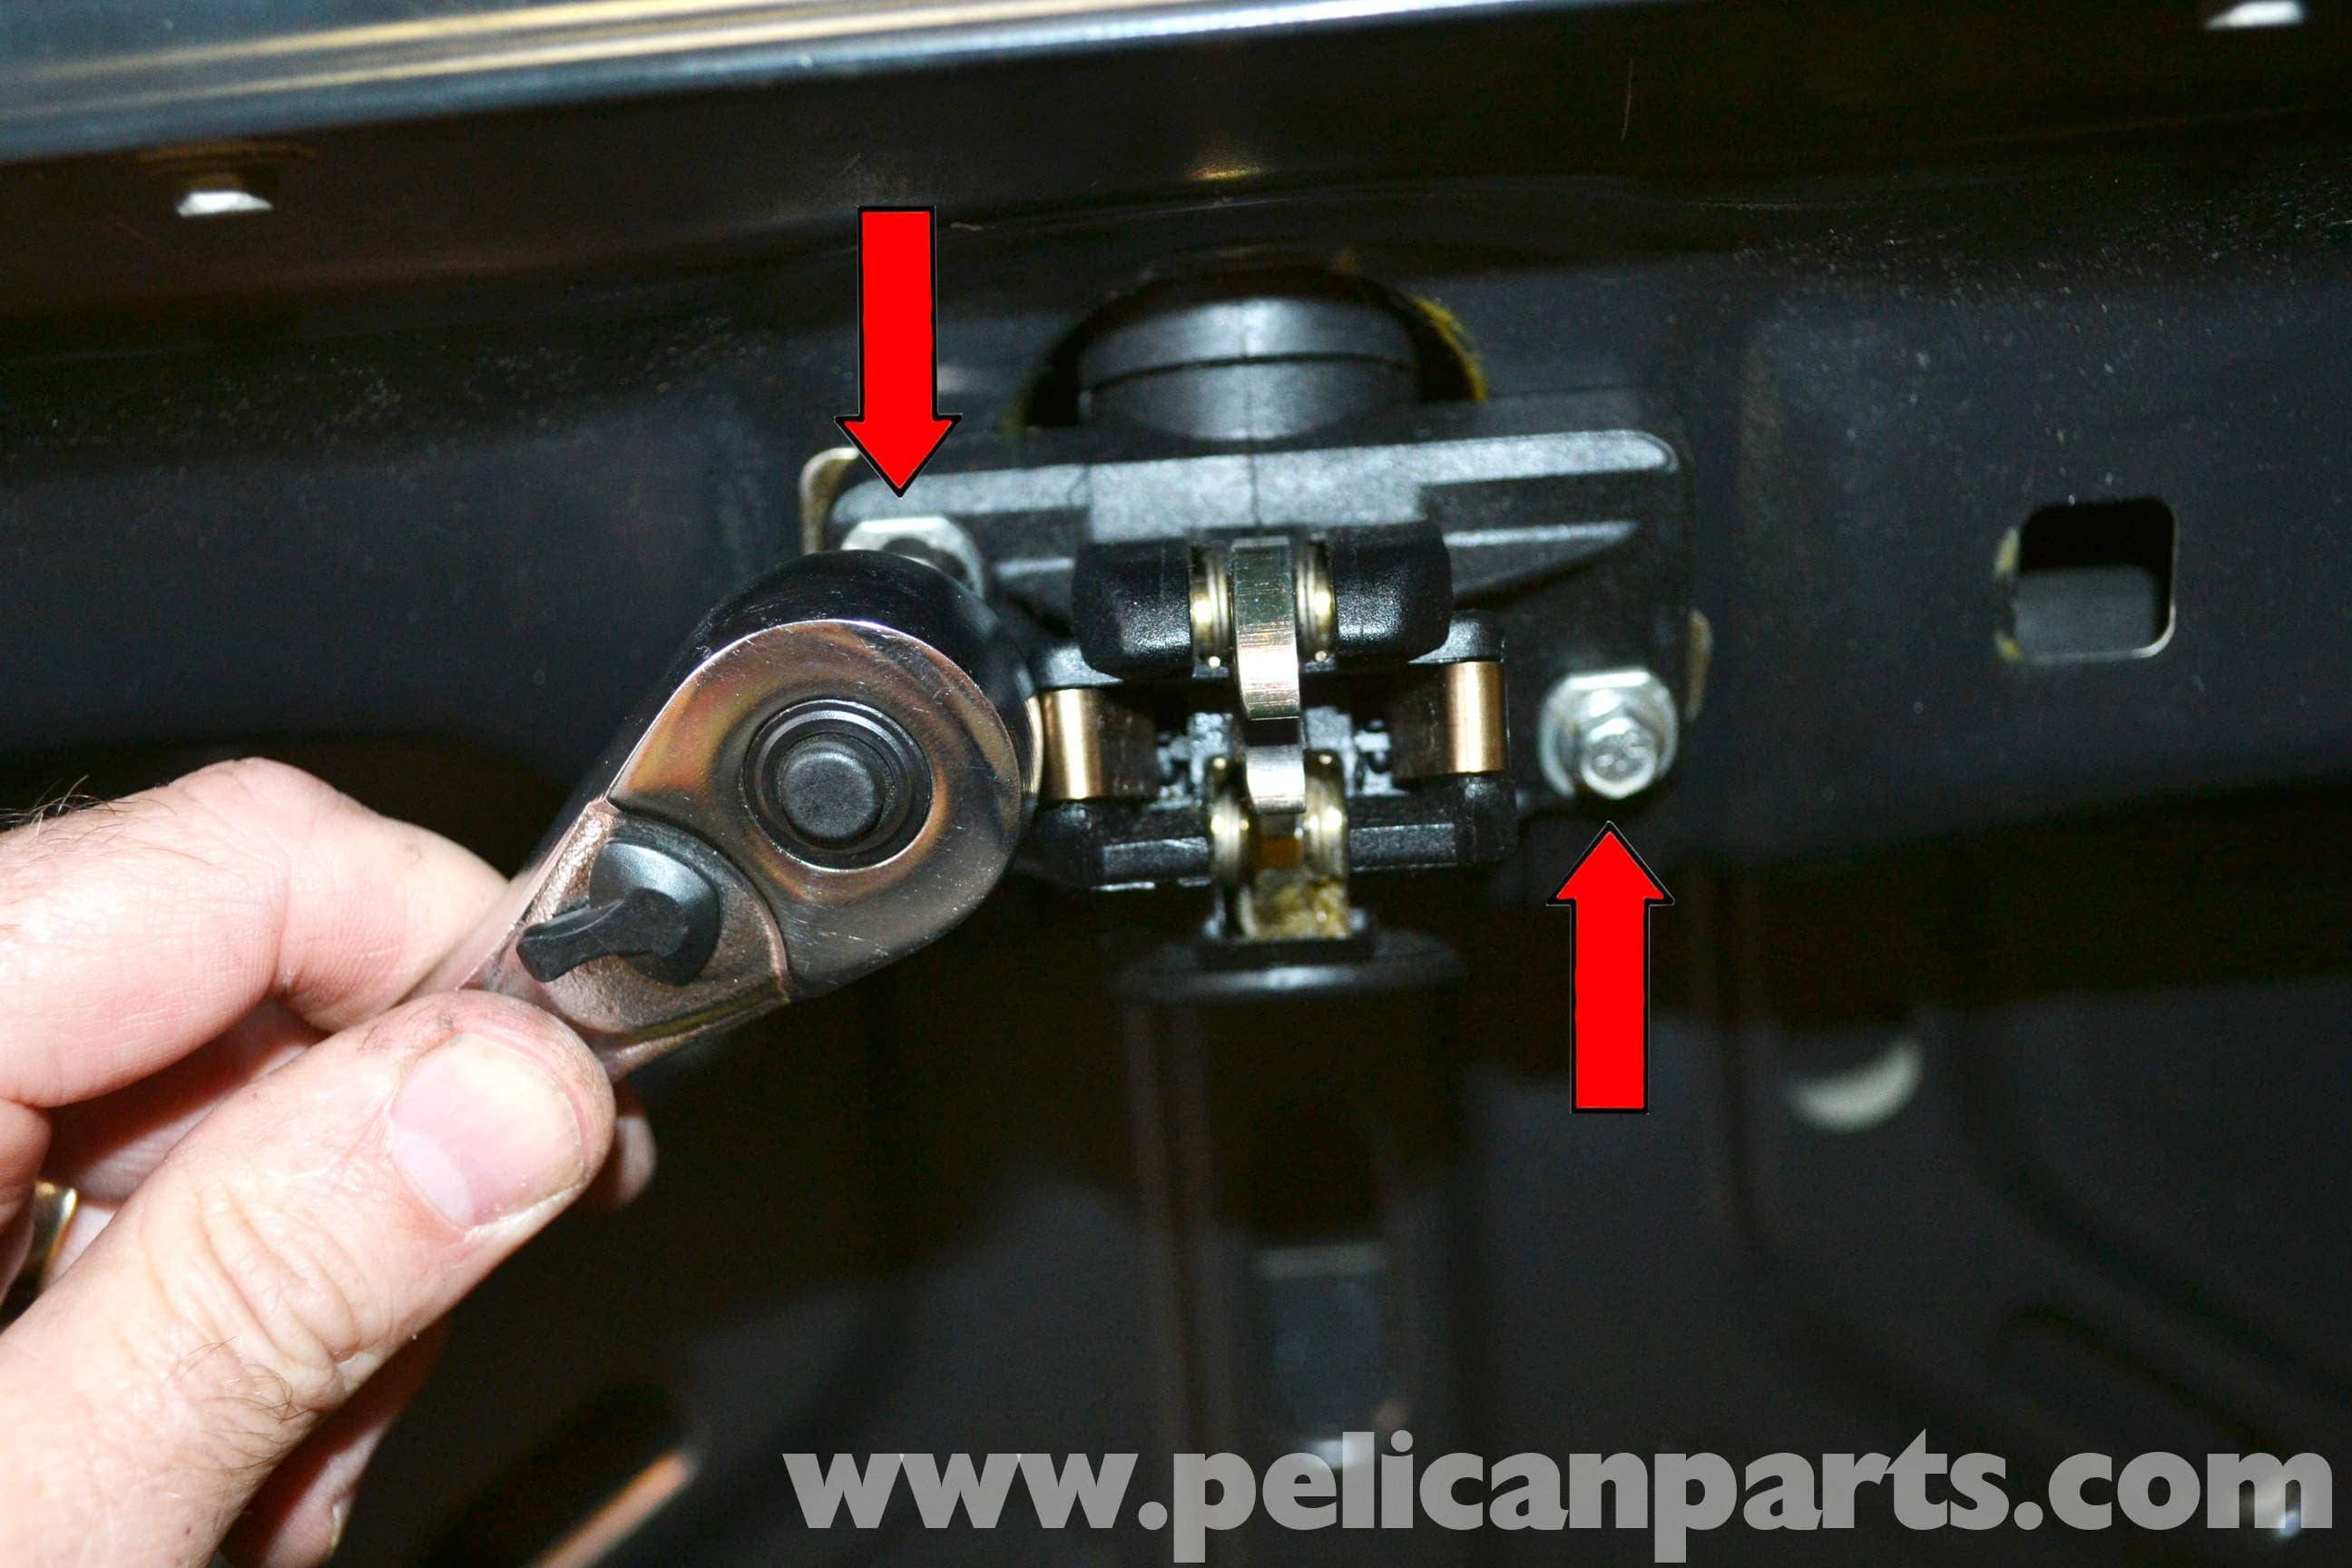 offers oem special center mercedes image accessories desktop min department parts benz body and